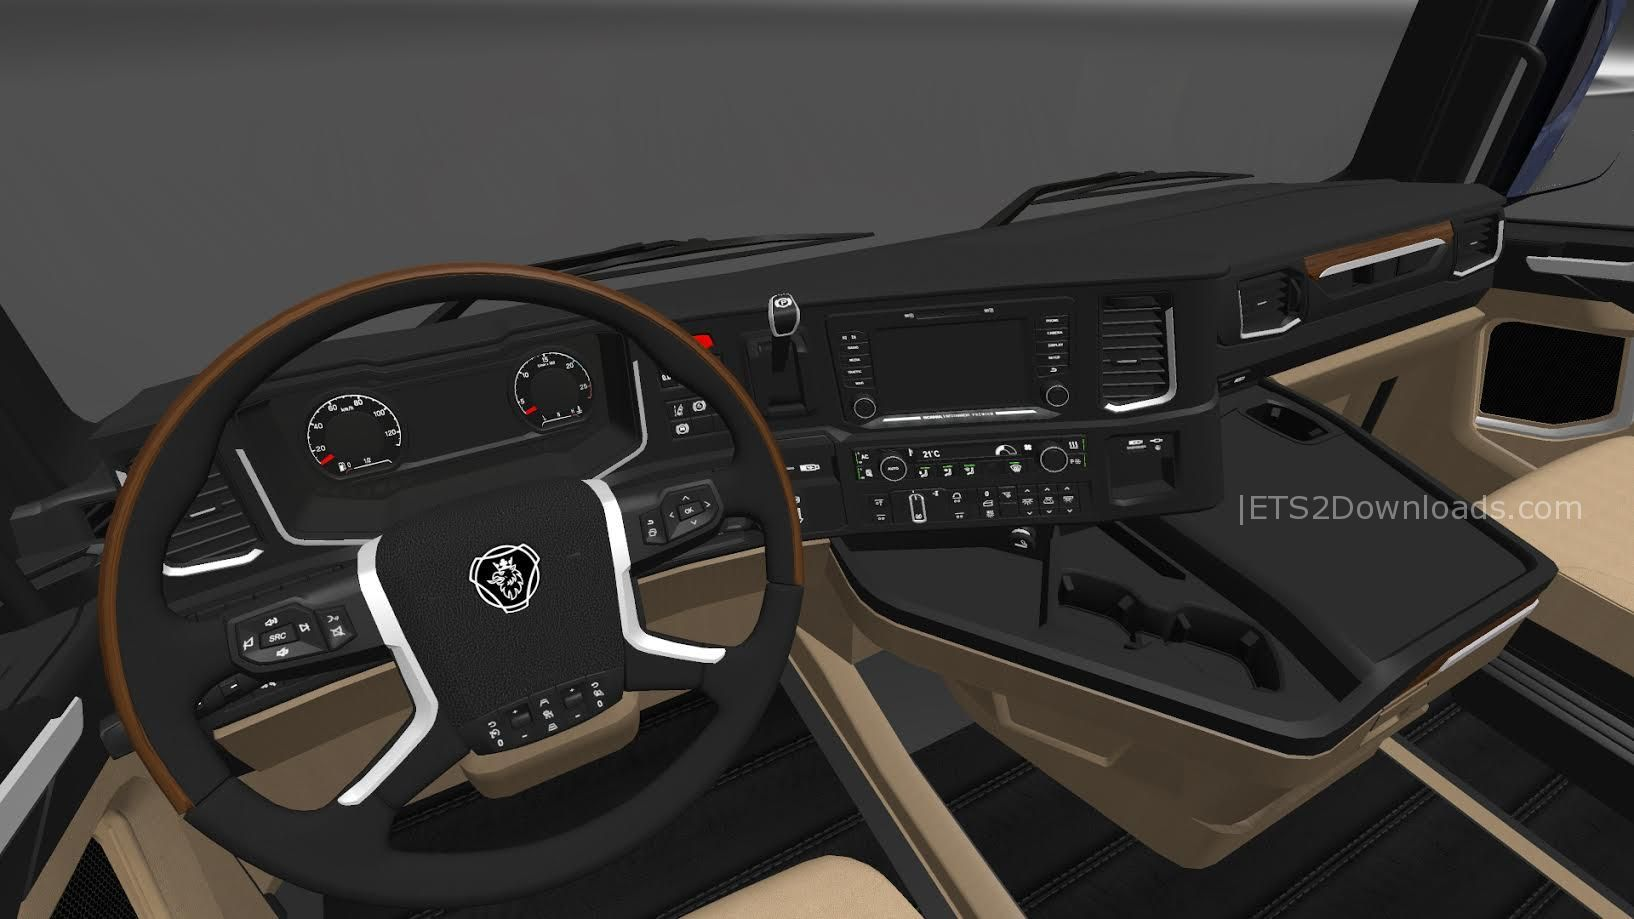 Hd interior for scania s730 v1 0 euro truck simulator 2 spot for Interior design simulator free